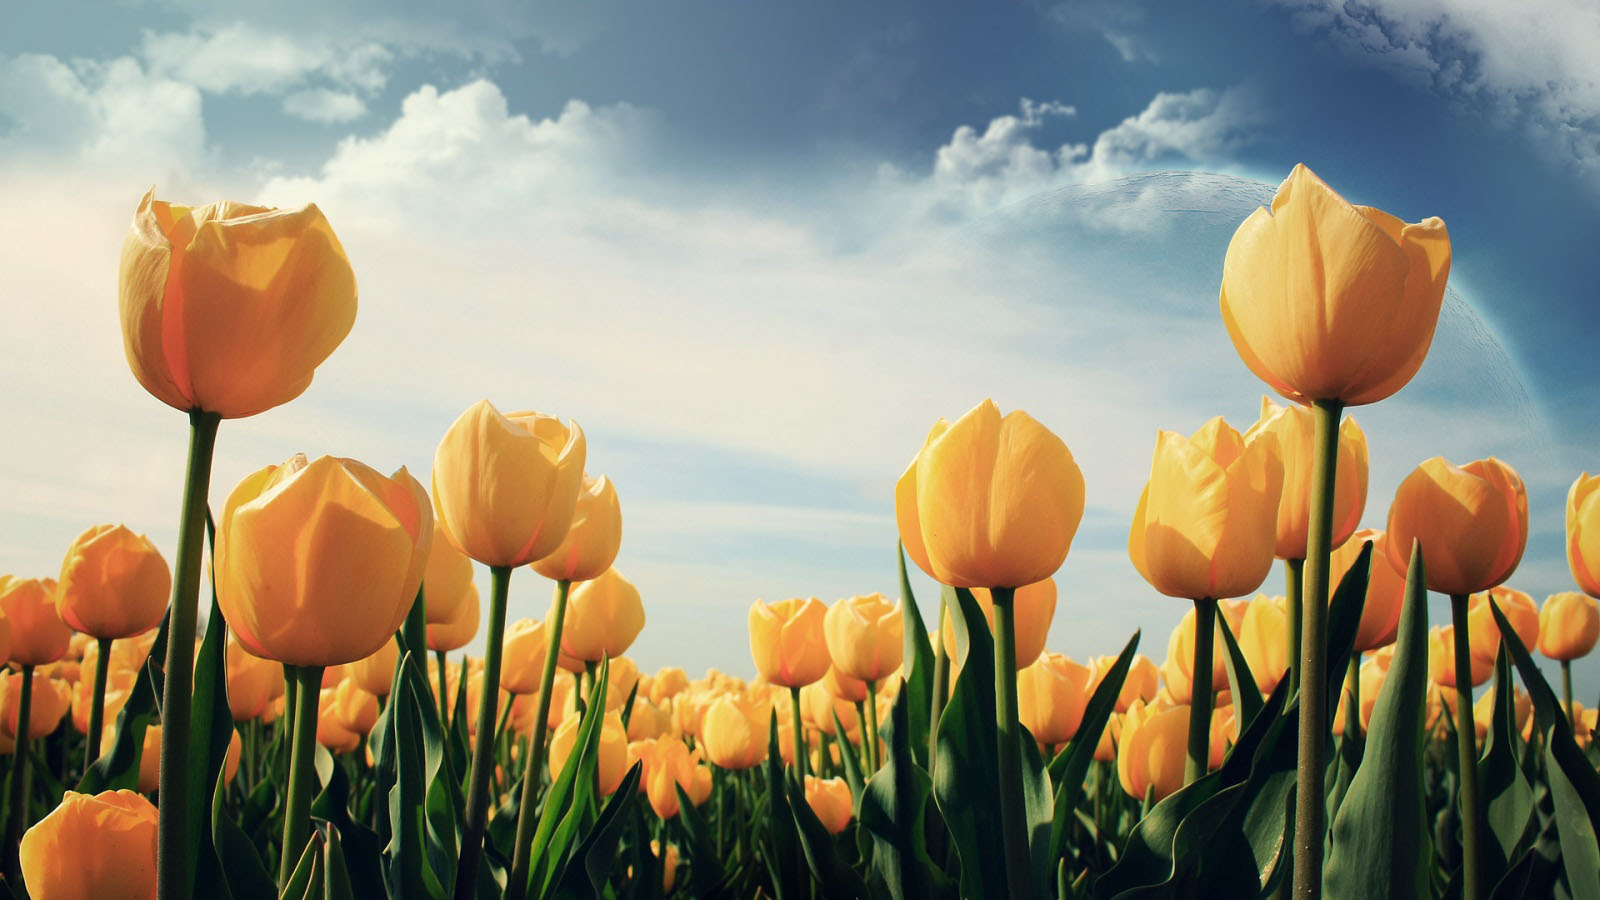 Yellow Tulips Flower Wallpaper Hd Wallpaper